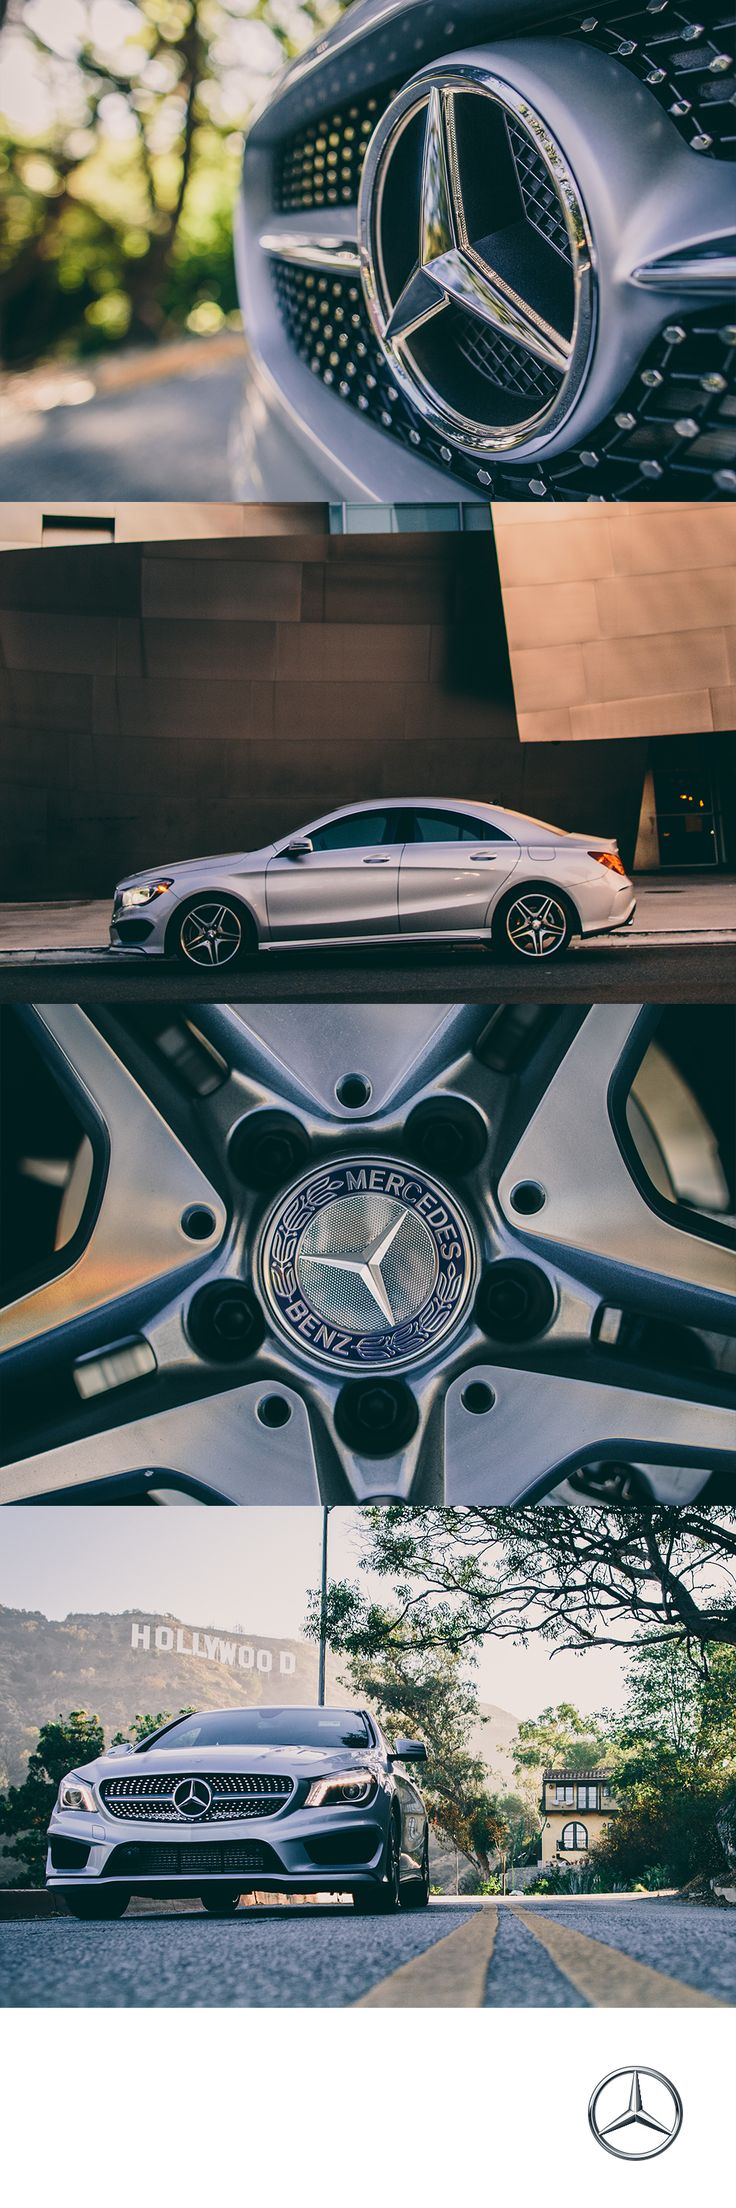 The CLA250 doesn't compromise when it comes to power with a sport-tuned suspension and 4MATIC all wheel drive. #MBPhotoCredit: Andres Tardio